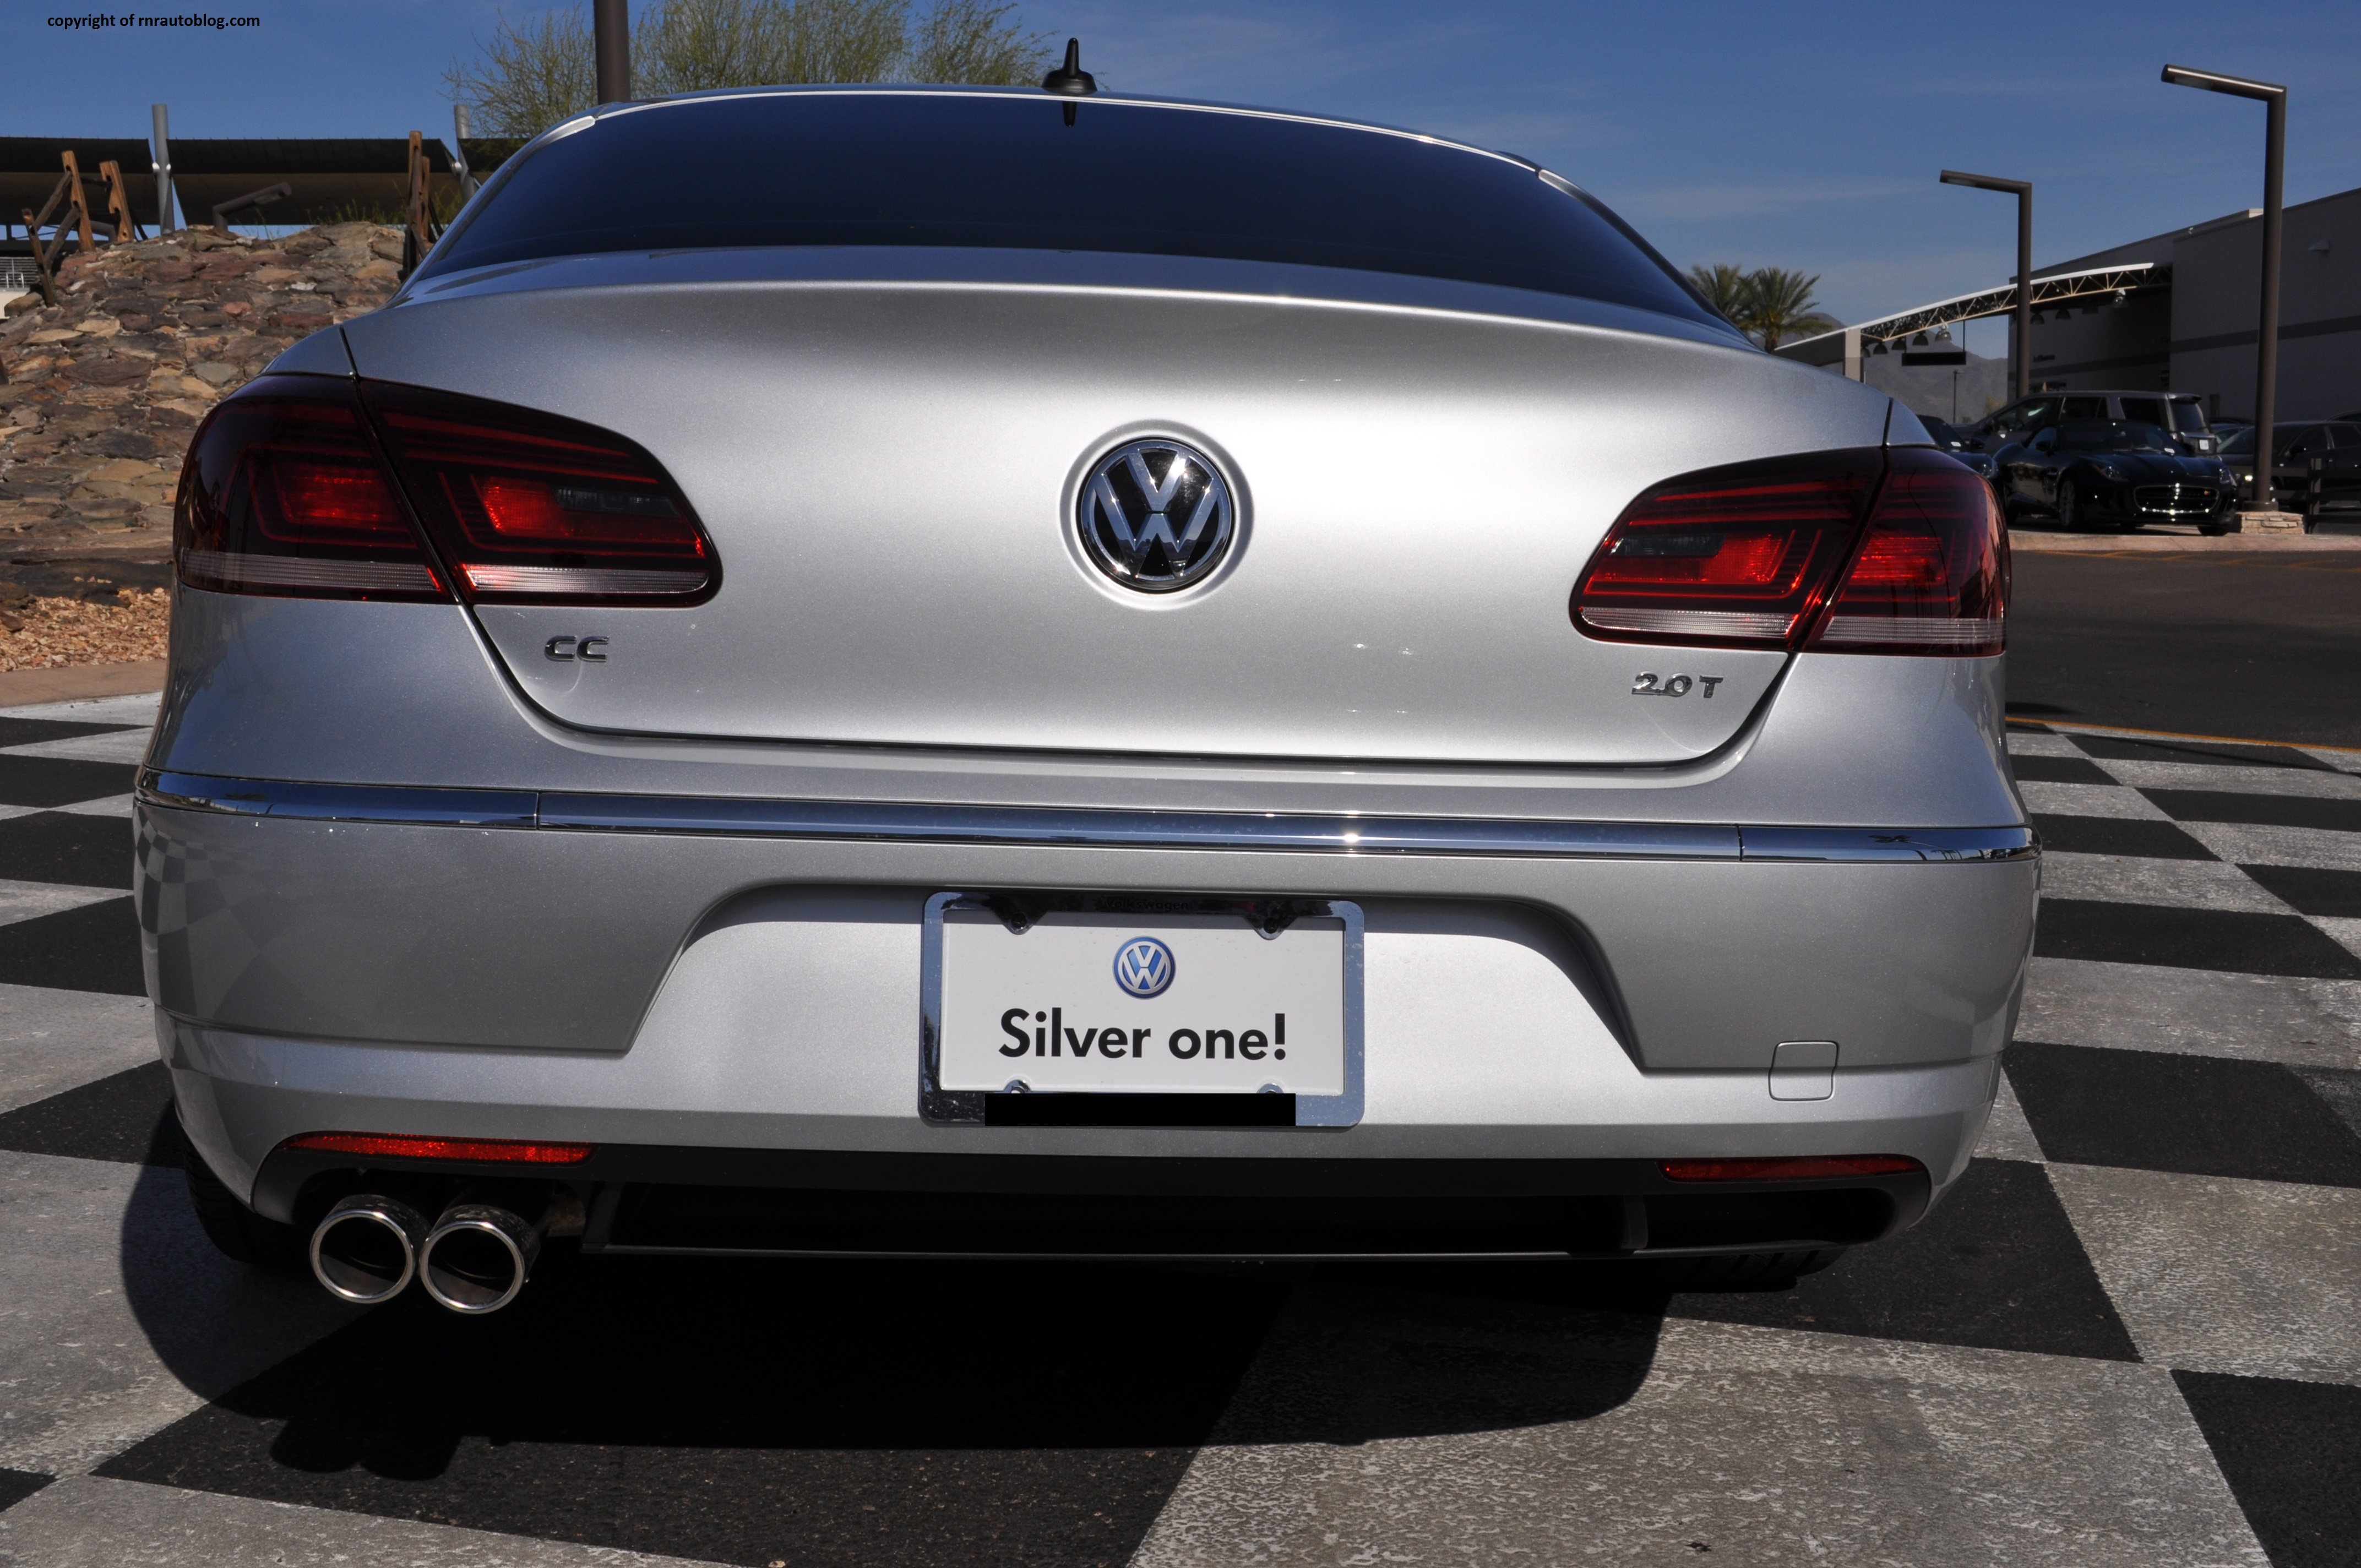 2014 Volkswagen Cc R Line Review Rnr Automotive Blog